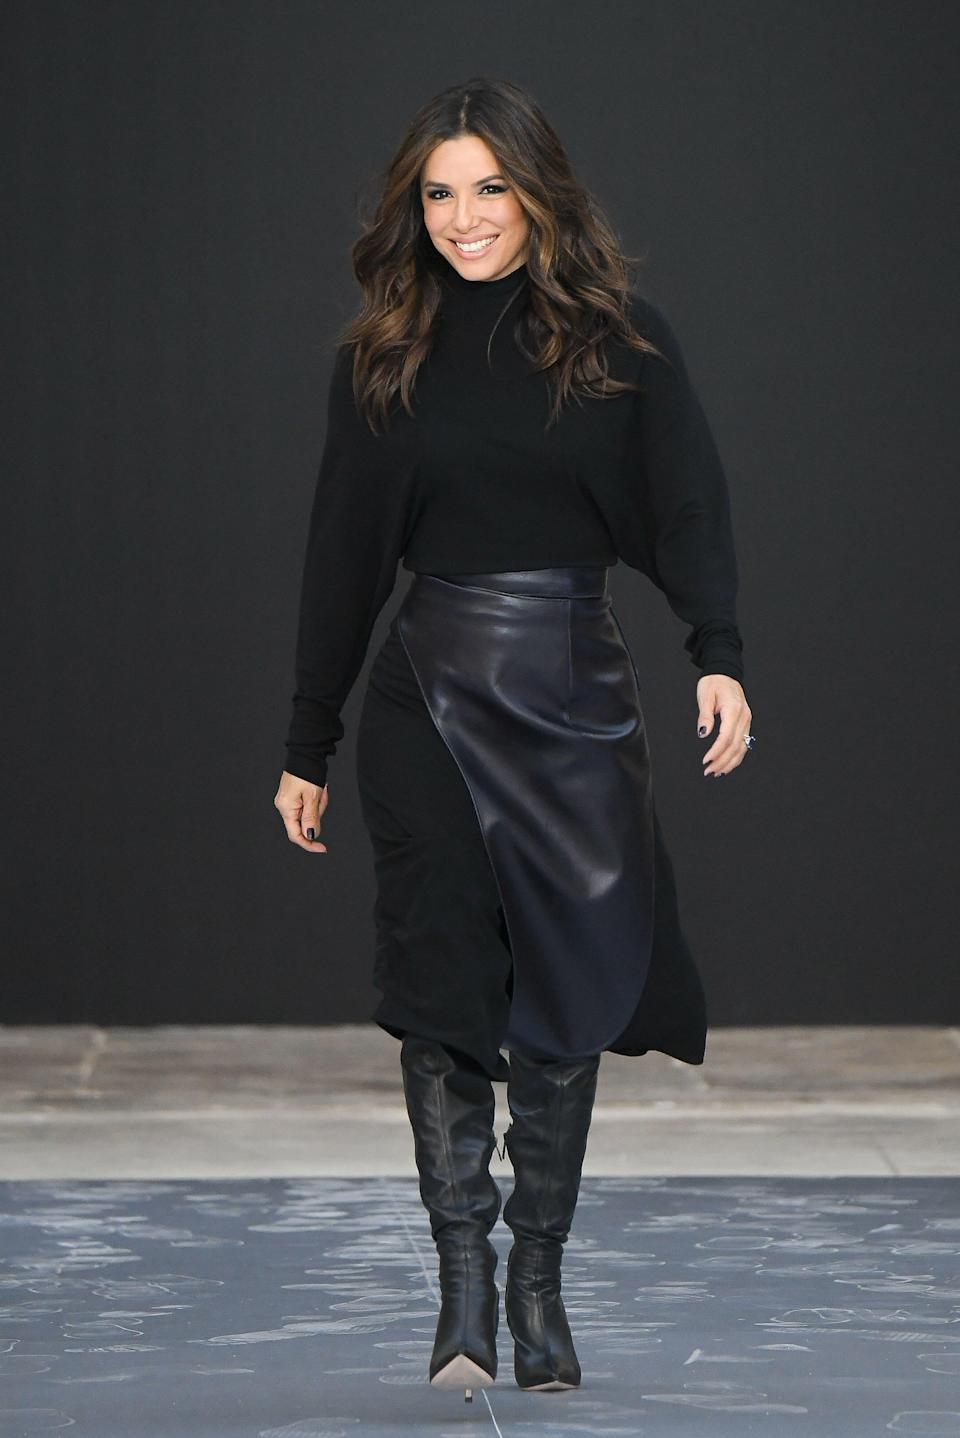 "<p>Eva Longoria brings passion and high energy to everything she does—from her activism to acting—so it should come as no surprise that her gym persona is not so different. But if there was ever any doubt, the former Desperate Housewives star offers plenty of proof by means of regularly posting videos of her workouts on her social media—both Eva and her trainer, <a href=""https://www.instagram.com/grantrobertsfit/?hl=en"" rel=""nofollow noopener"" target=""_blank"" data-ylk=""slk:Grant Roberts"" class=""link rapid-noclick-resp"">Grant Roberts</a>, post her workout sessions on <a href=""https://www.instagram.com/evalongoria/?hl=en"" rel=""nofollow noopener"" target=""_blank"" data-ylk=""slk:Instagram"" class=""link rapid-noclick-resp"">Instagram</a>.</p><p>After giving birth to her son, Santiago, in 2018, Eva took some time to ease back into her fitness routine in order to give her body enough time to properly heal. 'It created a human life, so I really wasn't too hard (on myself) about getting back into shape,' Eva told <a href=""https://www.usmagazine.com/celebrity-body/news/eva-longorias-post-baby-body-routine-rest-yoga-weight-training/"" rel=""nofollow noopener"" target=""_blank"" data-ylk=""slk:US Weekly"" class=""link rapid-noclick-resp"">US Weekly</a>. But about a year and a half ago, she started to amp up her workouts by incorporating serious strength training sessions (which, if you <a href=""https://www.instagram.com/p/CI6IXMOHjna/"" rel=""nofollow noopener"" target=""_blank"" data-ylk=""slk:peeped on Instagram"" class=""link rapid-noclick-resp"">peeped on Instagram</a>, are pretty intense!). </p><p>In addition to doing weighted exercises, Eva also likes to add variety to her workouts. 'I do a lot. I'm a runner, I do <a href=""https://www.womenshealthmag.com/uk/fitness/yoga/"" rel=""nofollow noopener"" target=""_blank"" data-ylk=""slk:Yoga"" class=""link rapid-noclick-resp"">Yoga</a>, I do <a href=""https://www.womenshealthmag.com/uk/fitness/a35010425/pilates-everyday/"" rel=""nofollow noopener"" target=""_blank"" data-ylk=""slk:pilates"" class=""link rapid-noclick-resp"">pilates</a>. I do SoulCycle, and I'm just constantly mixing it up,' she told <a href=""https://people.com/chica/eva-longoria-beauty-tips/"" rel=""nofollow noopener"" target=""_blank"" data-ylk=""slk:People"" class=""link rapid-noclick-resp"">People</a> in 2017. </p><p> So how does she do it all? 'Everybody thinks there's some kind of secret to looking good, but it's not a secret. It's diet and exercise,' Eva told <a href=""https://people.com/chica/eva-longoria-beauty-tips/"" rel=""nofollow noopener"" target=""_blank"" data-ylk=""slk:People."" class=""link rapid-noclick-resp"">People.</a> Other than that: 'It's honestly just being committed to a goal,' she told US Weekly. </p><h2 class=""body-h2"">Here's 8 ways Eva stays so freaking fit at 46</h2>"